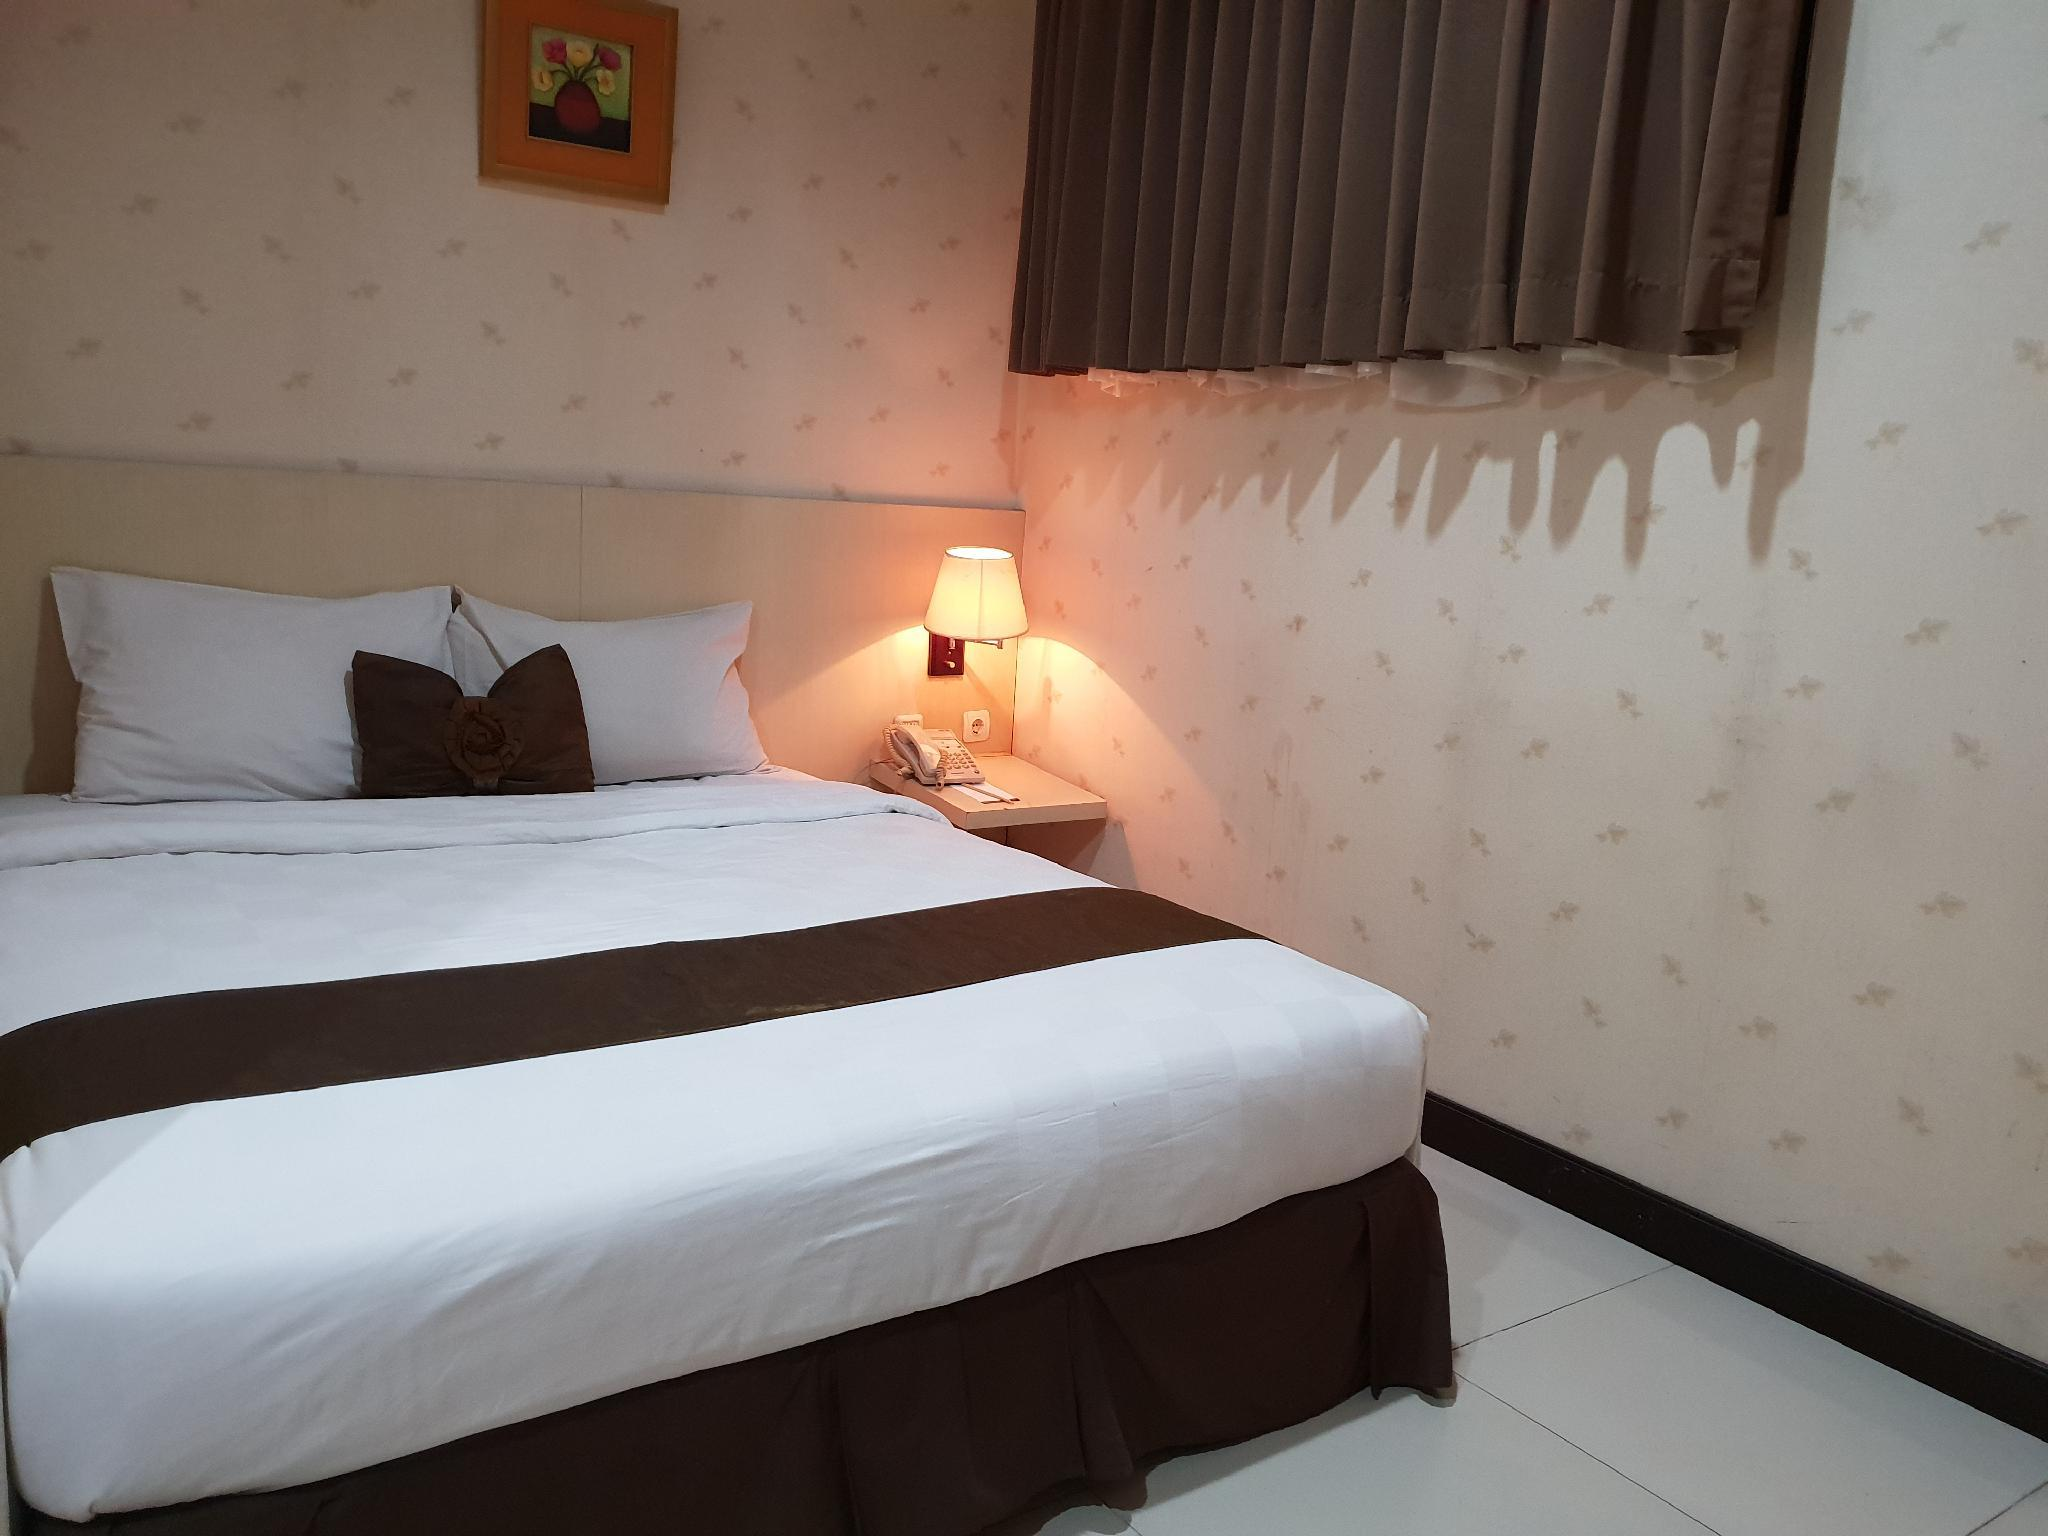 Langit2 Rumah Scarlet Kebon Kawung Hotel Room Deals Reviews Photos Bandung